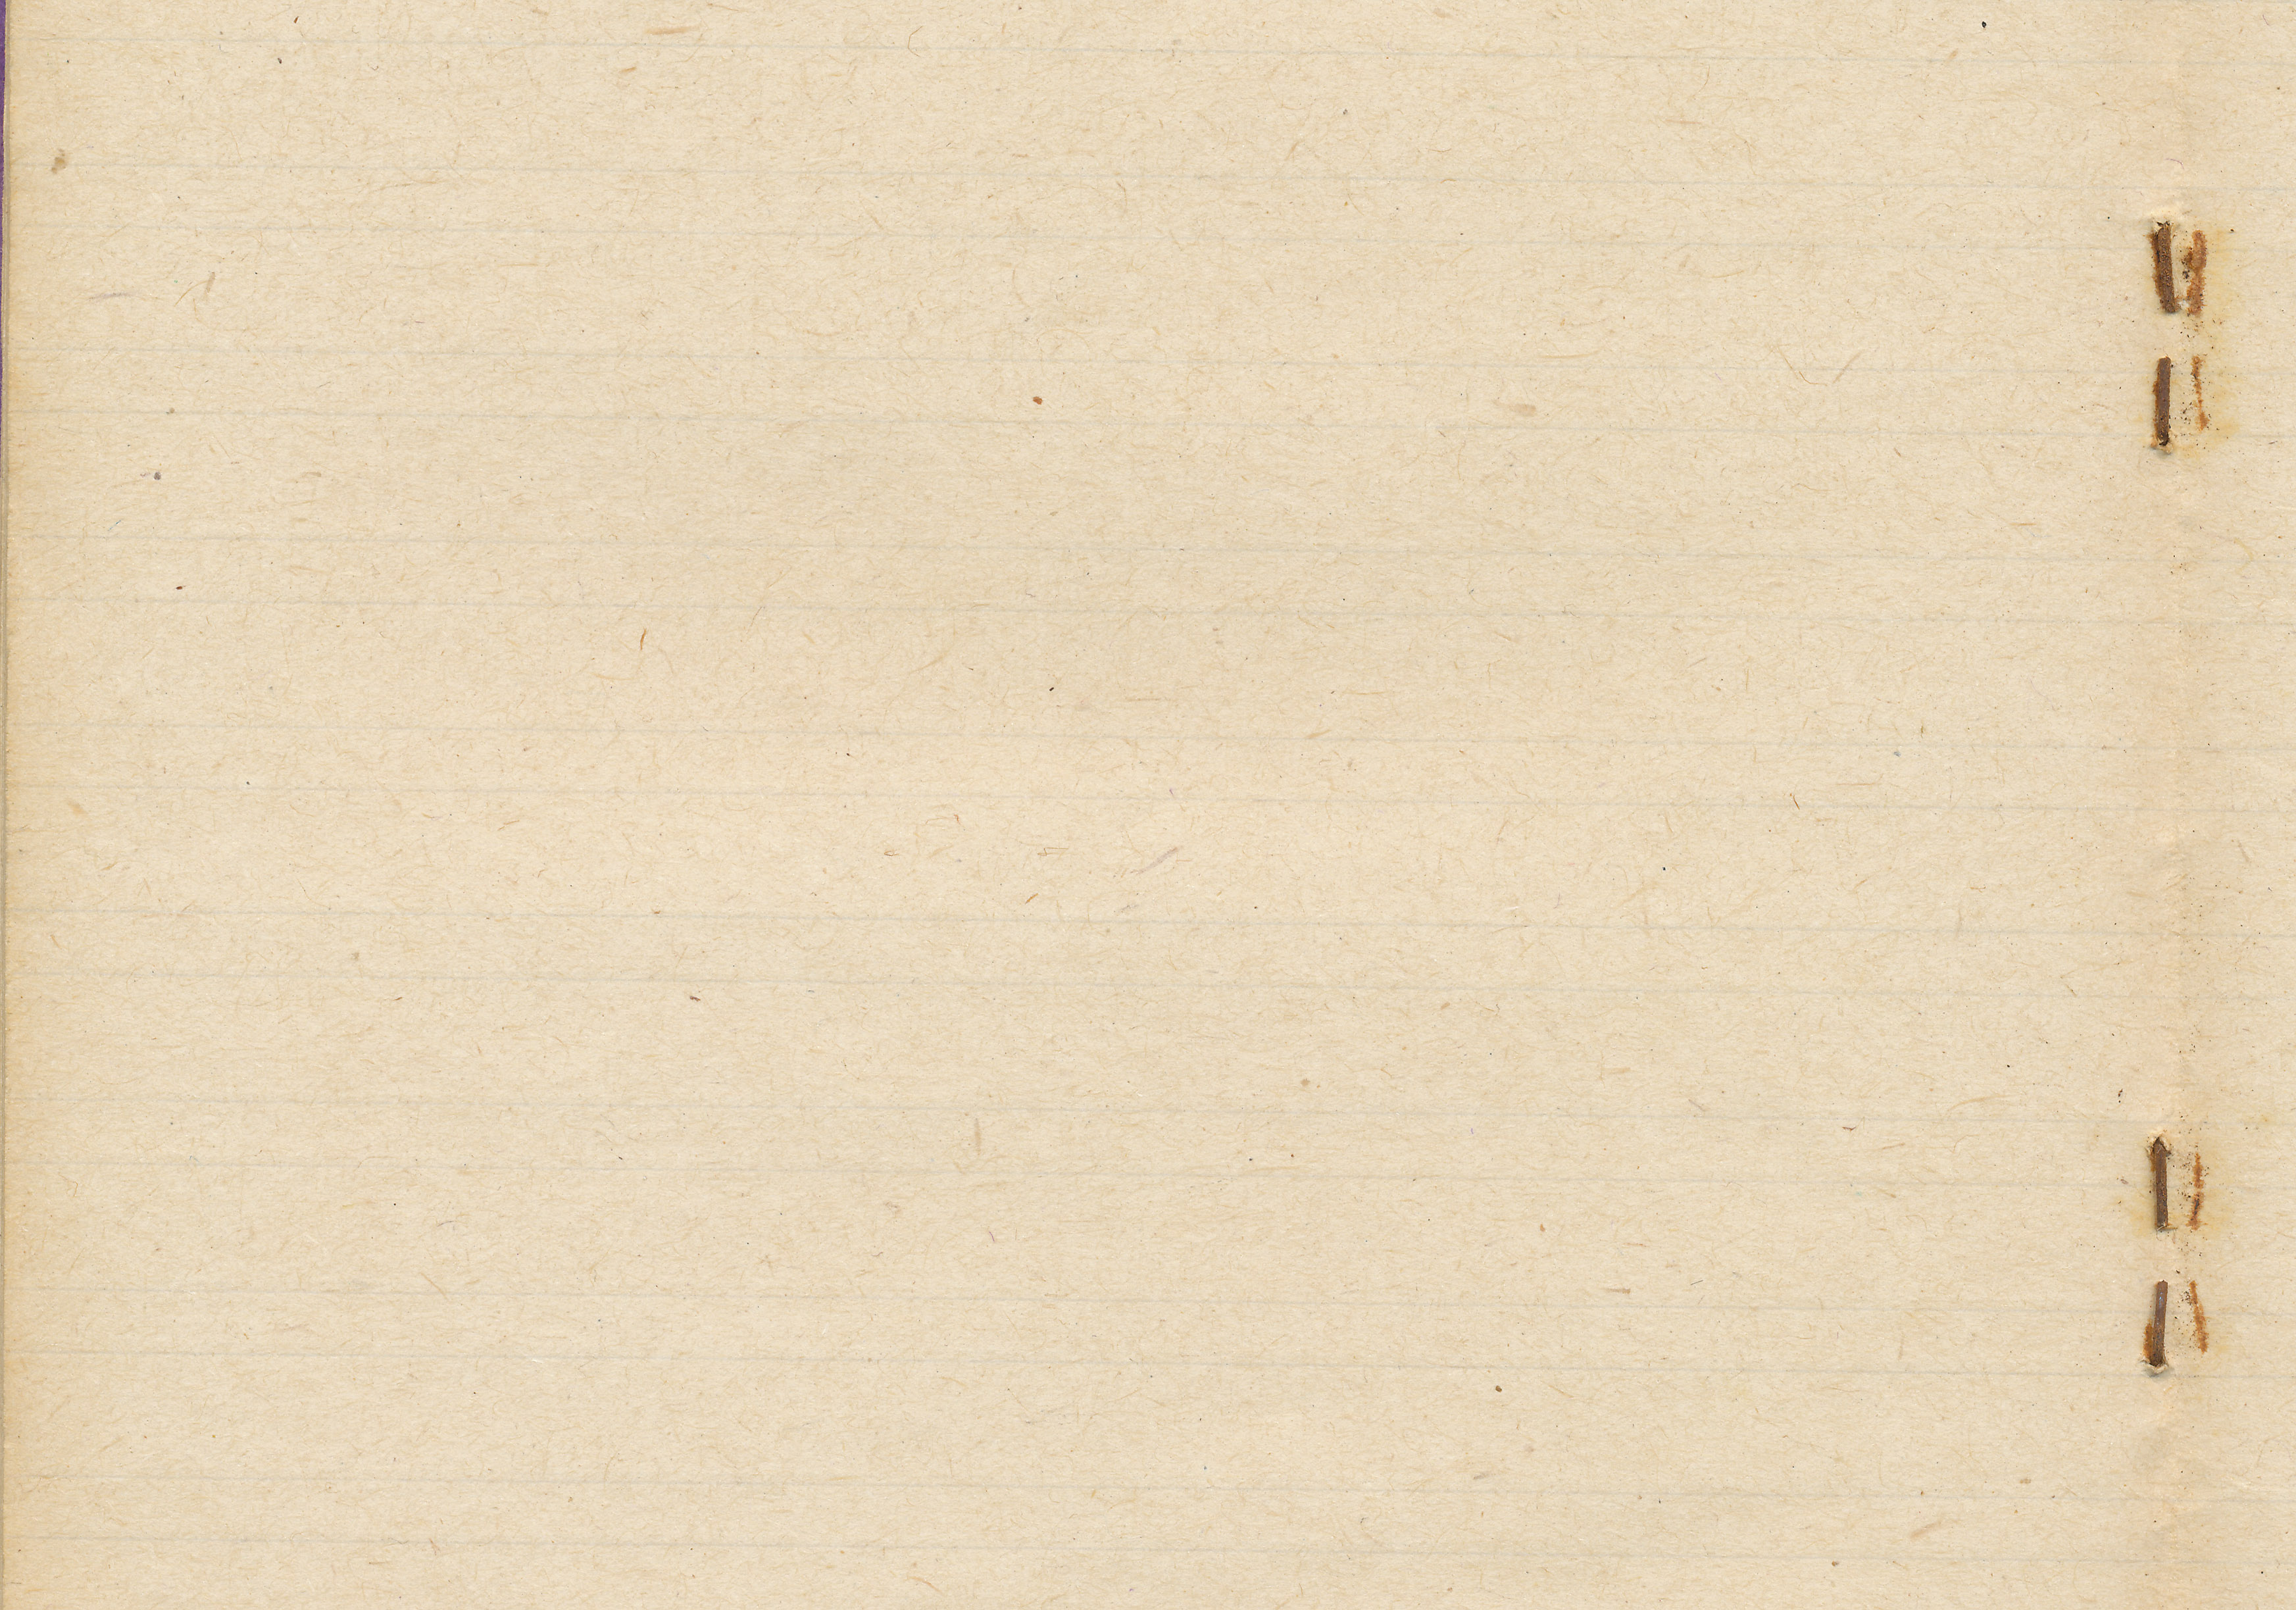 Paper with yellow color | Textures for photoshop free